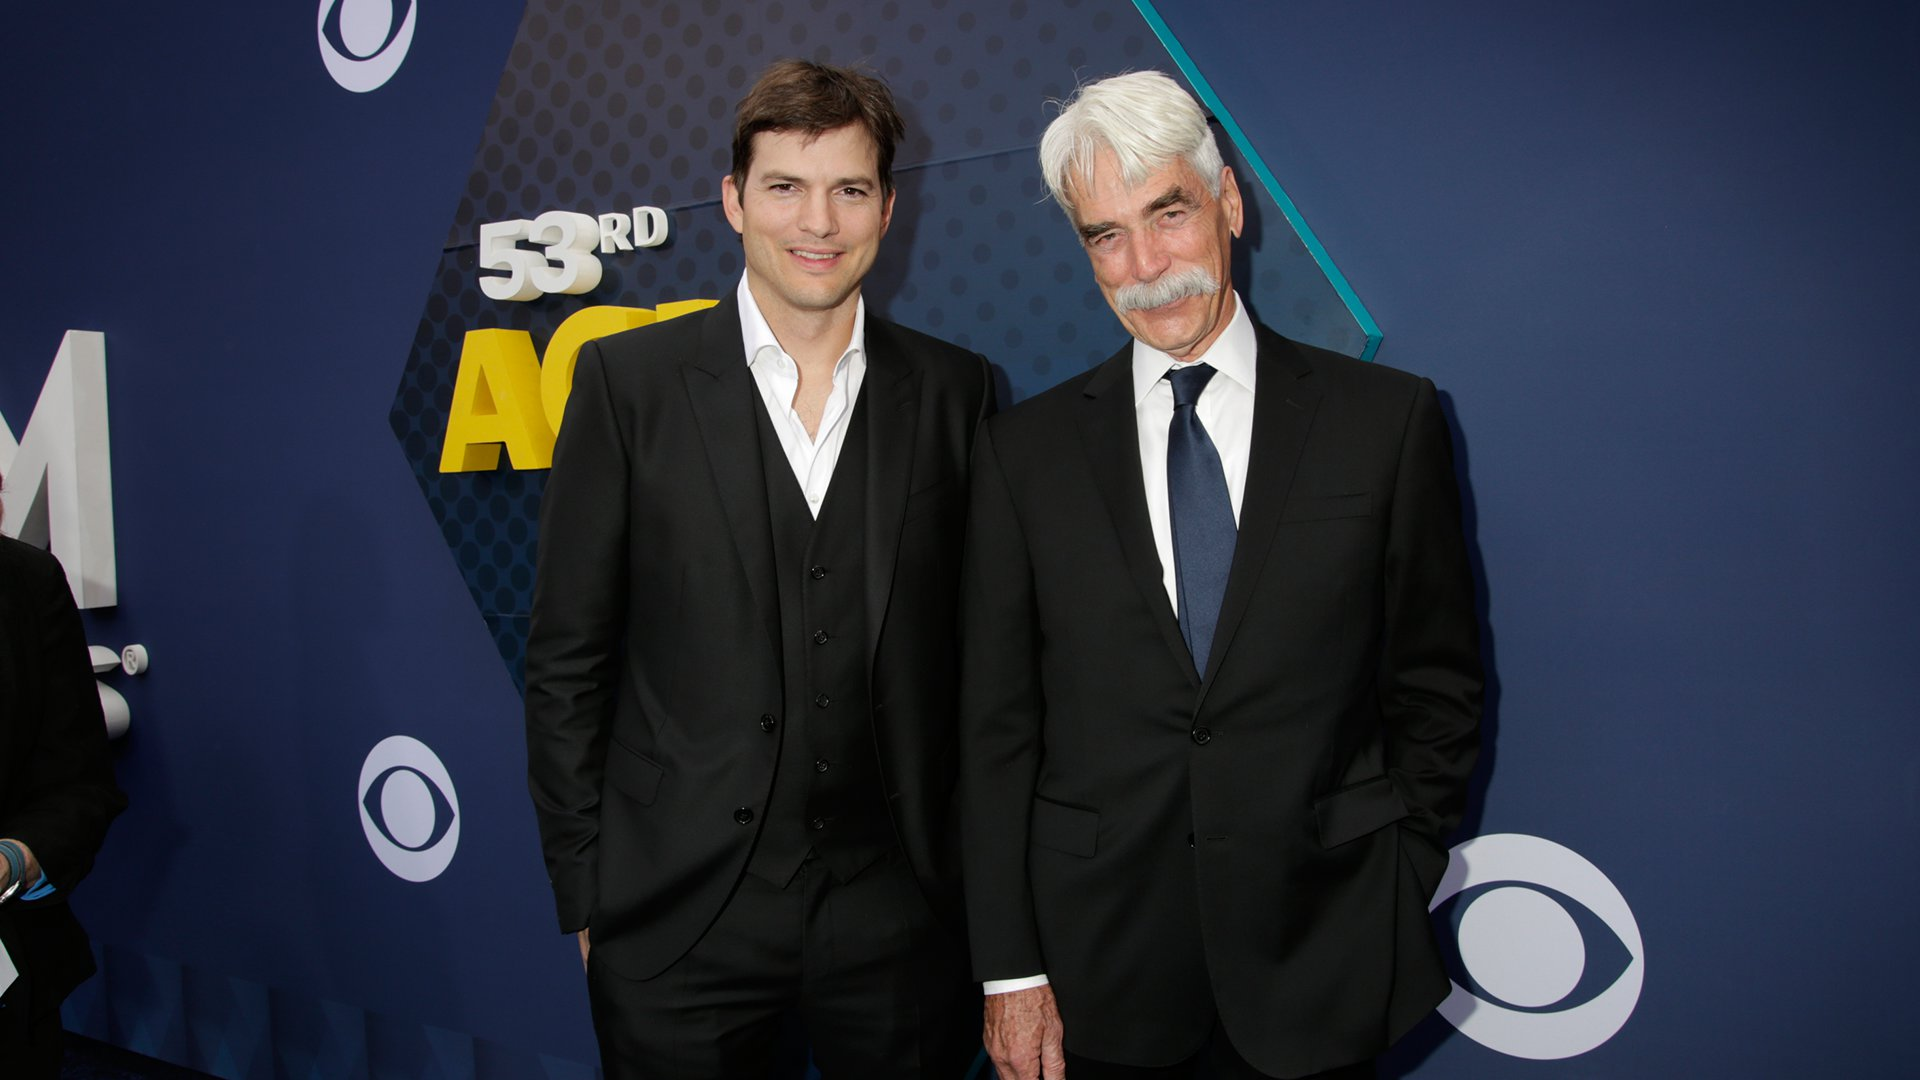 Ashton Kutcher and Sam Elliott, stars of The Ranch, take a break from filming to attend the 53rd ACM Awards.